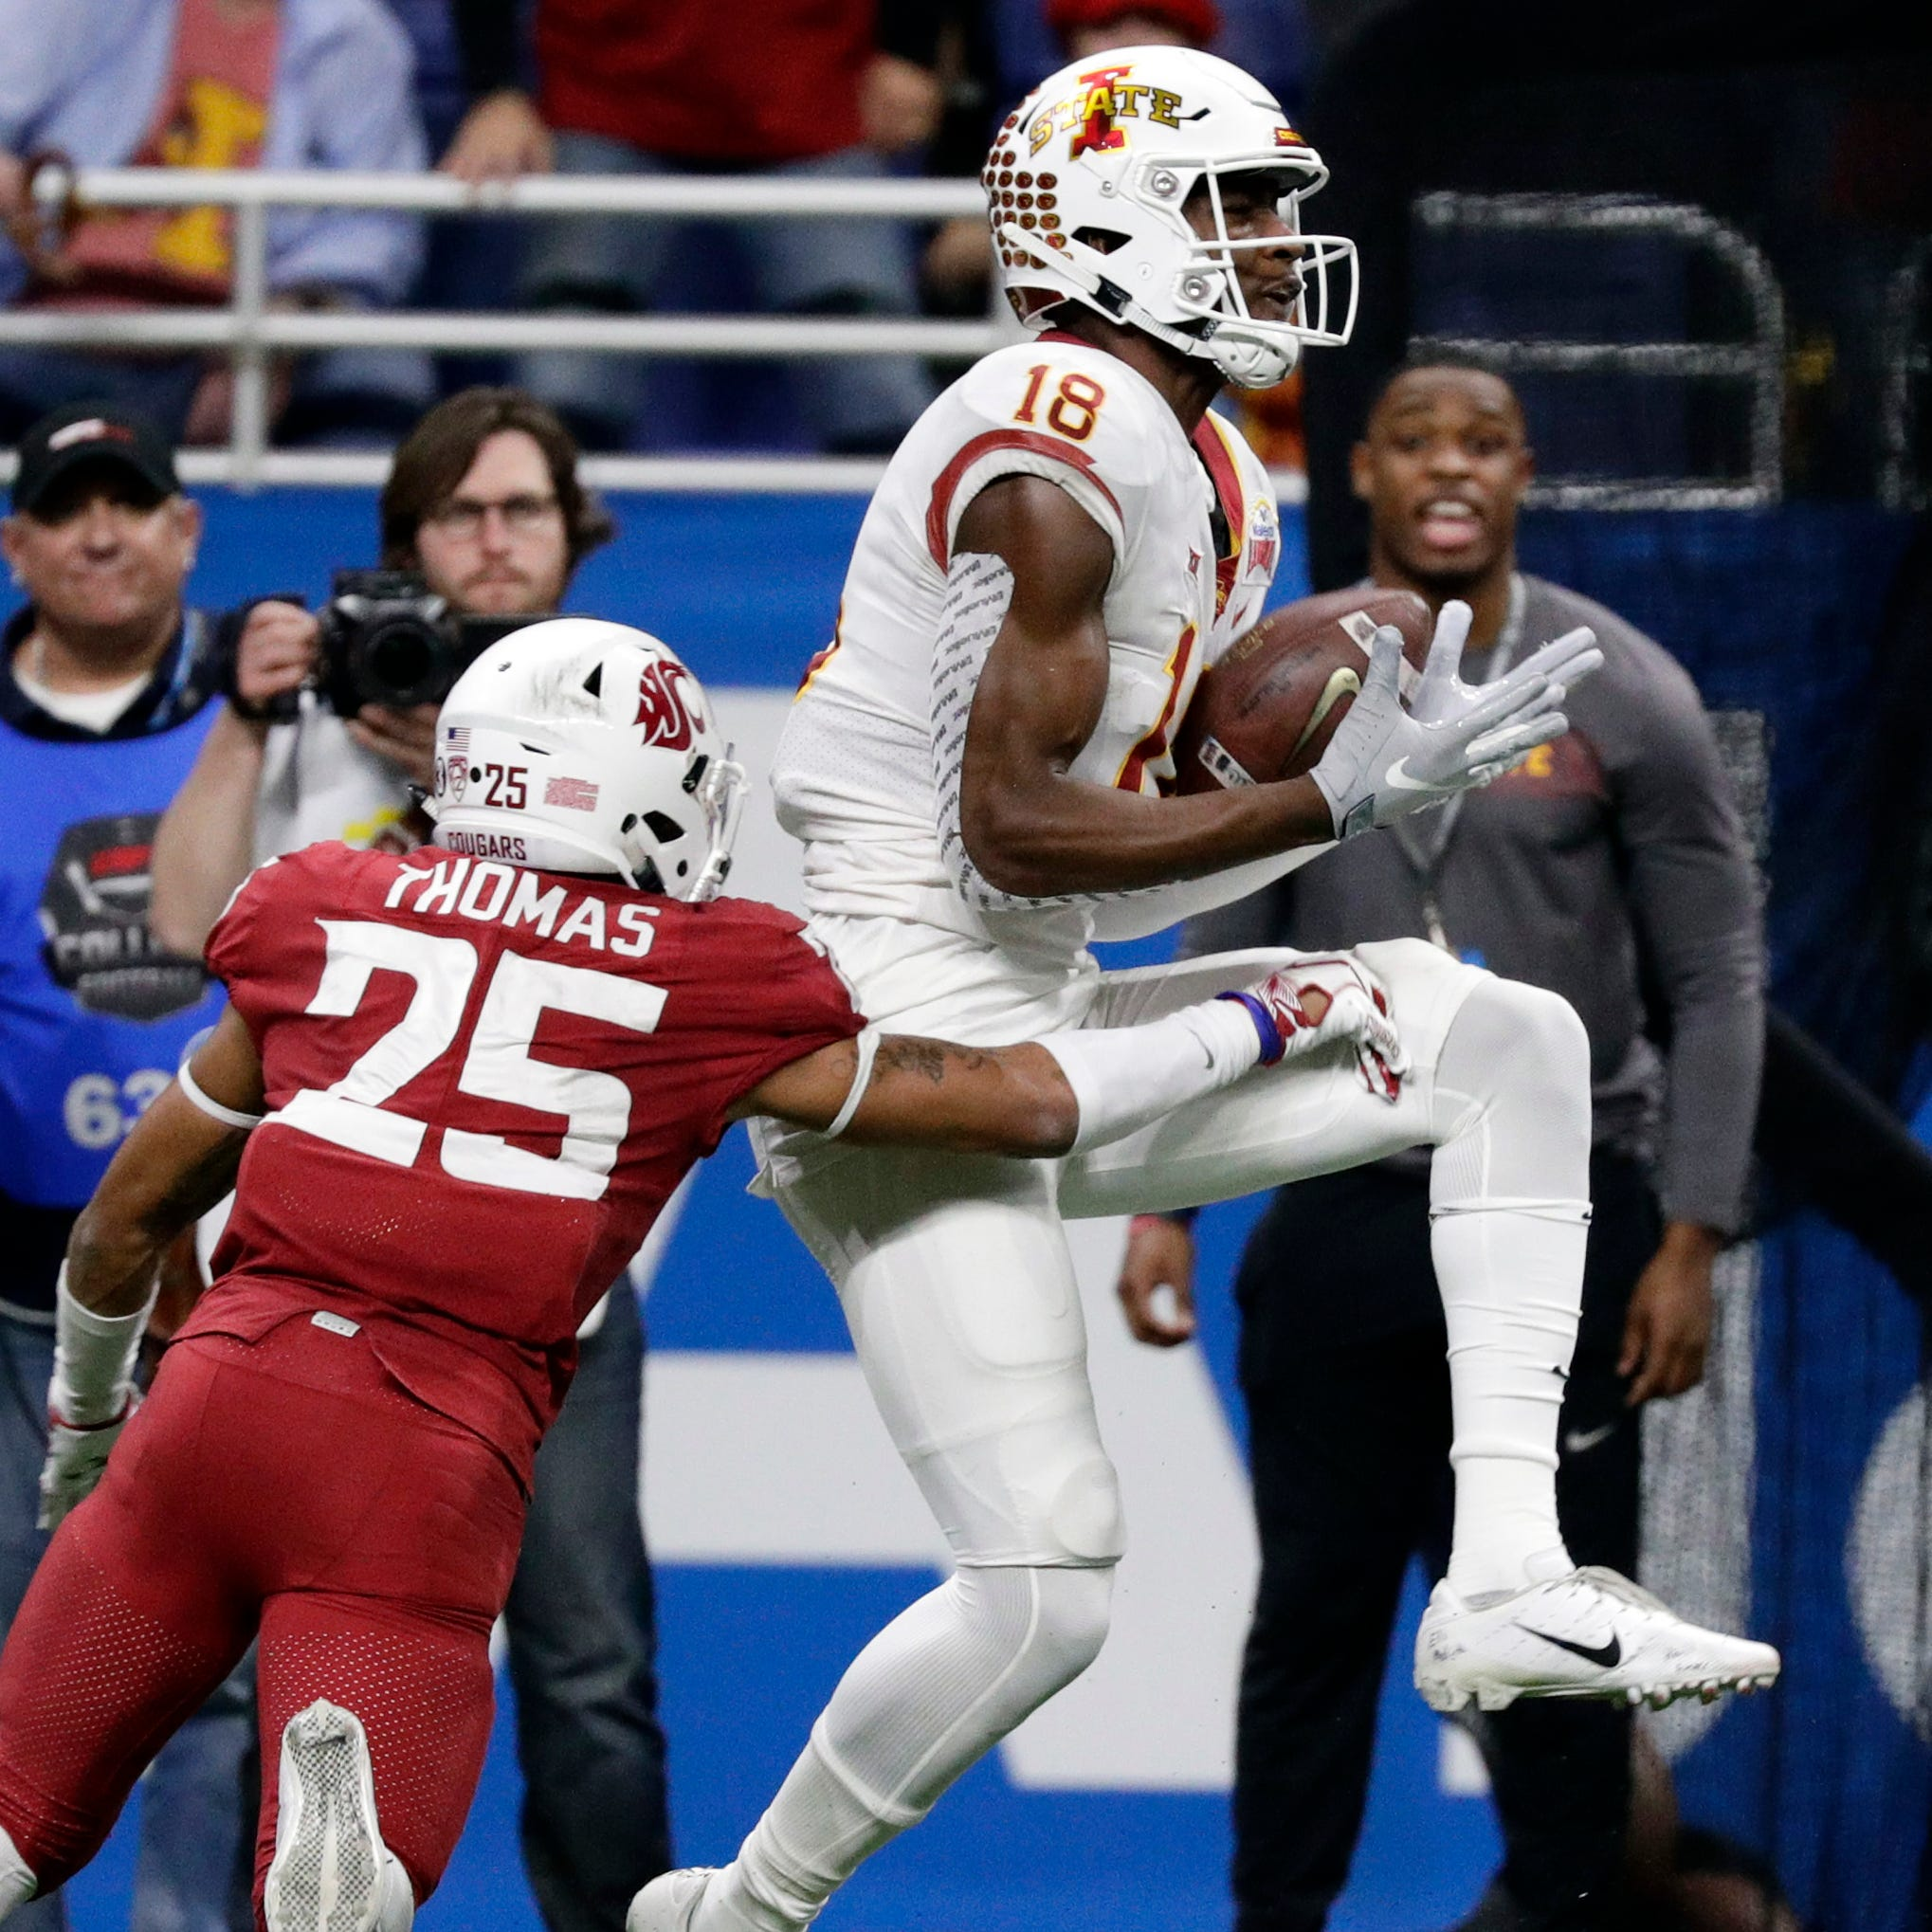 Lions 2019 draft preview: Team has room to upgrade wide receiver corps